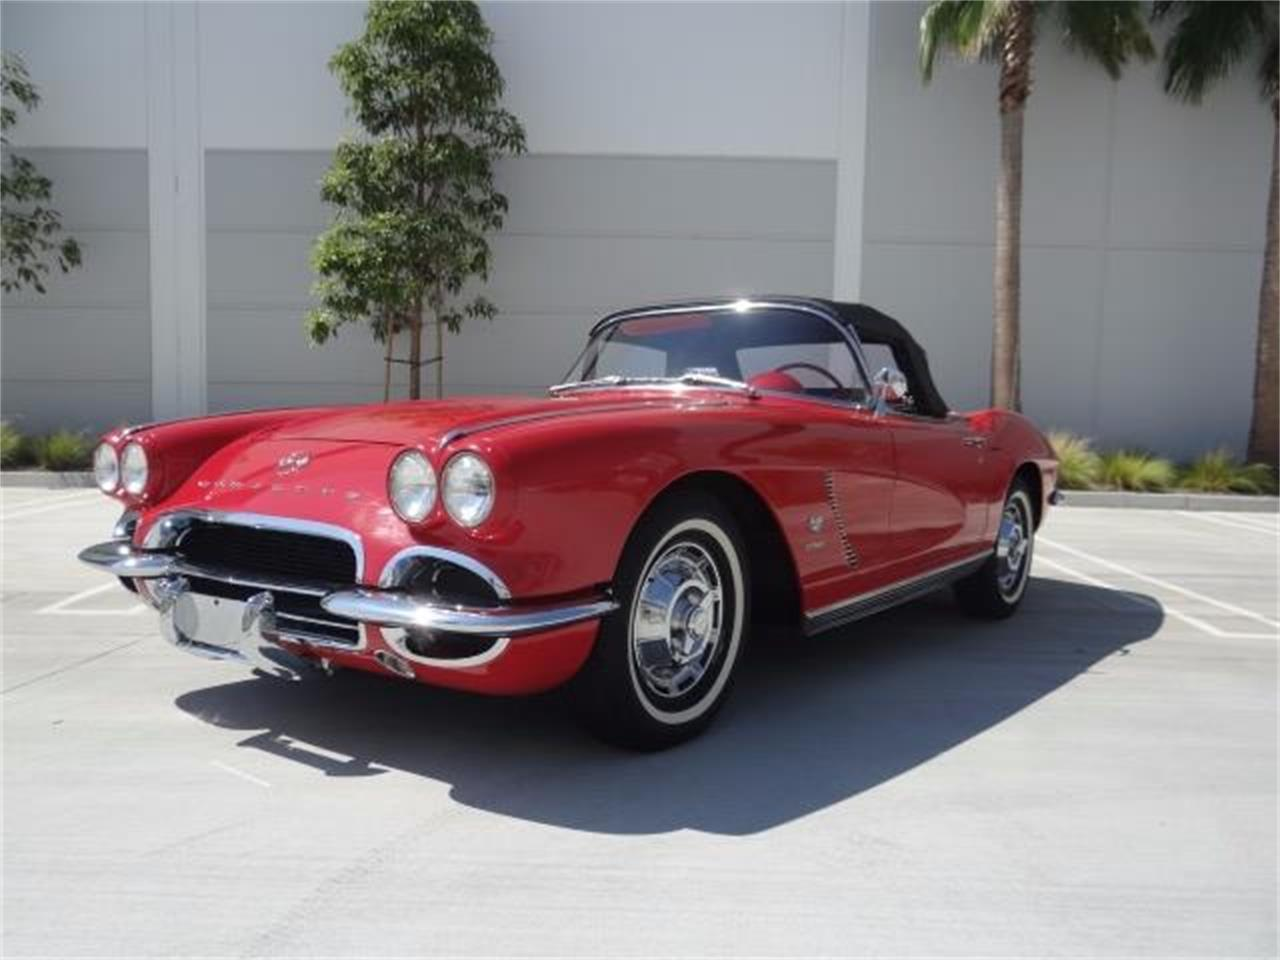 Large Picture of '62 Chevrolet Corvette located in California - LG8T